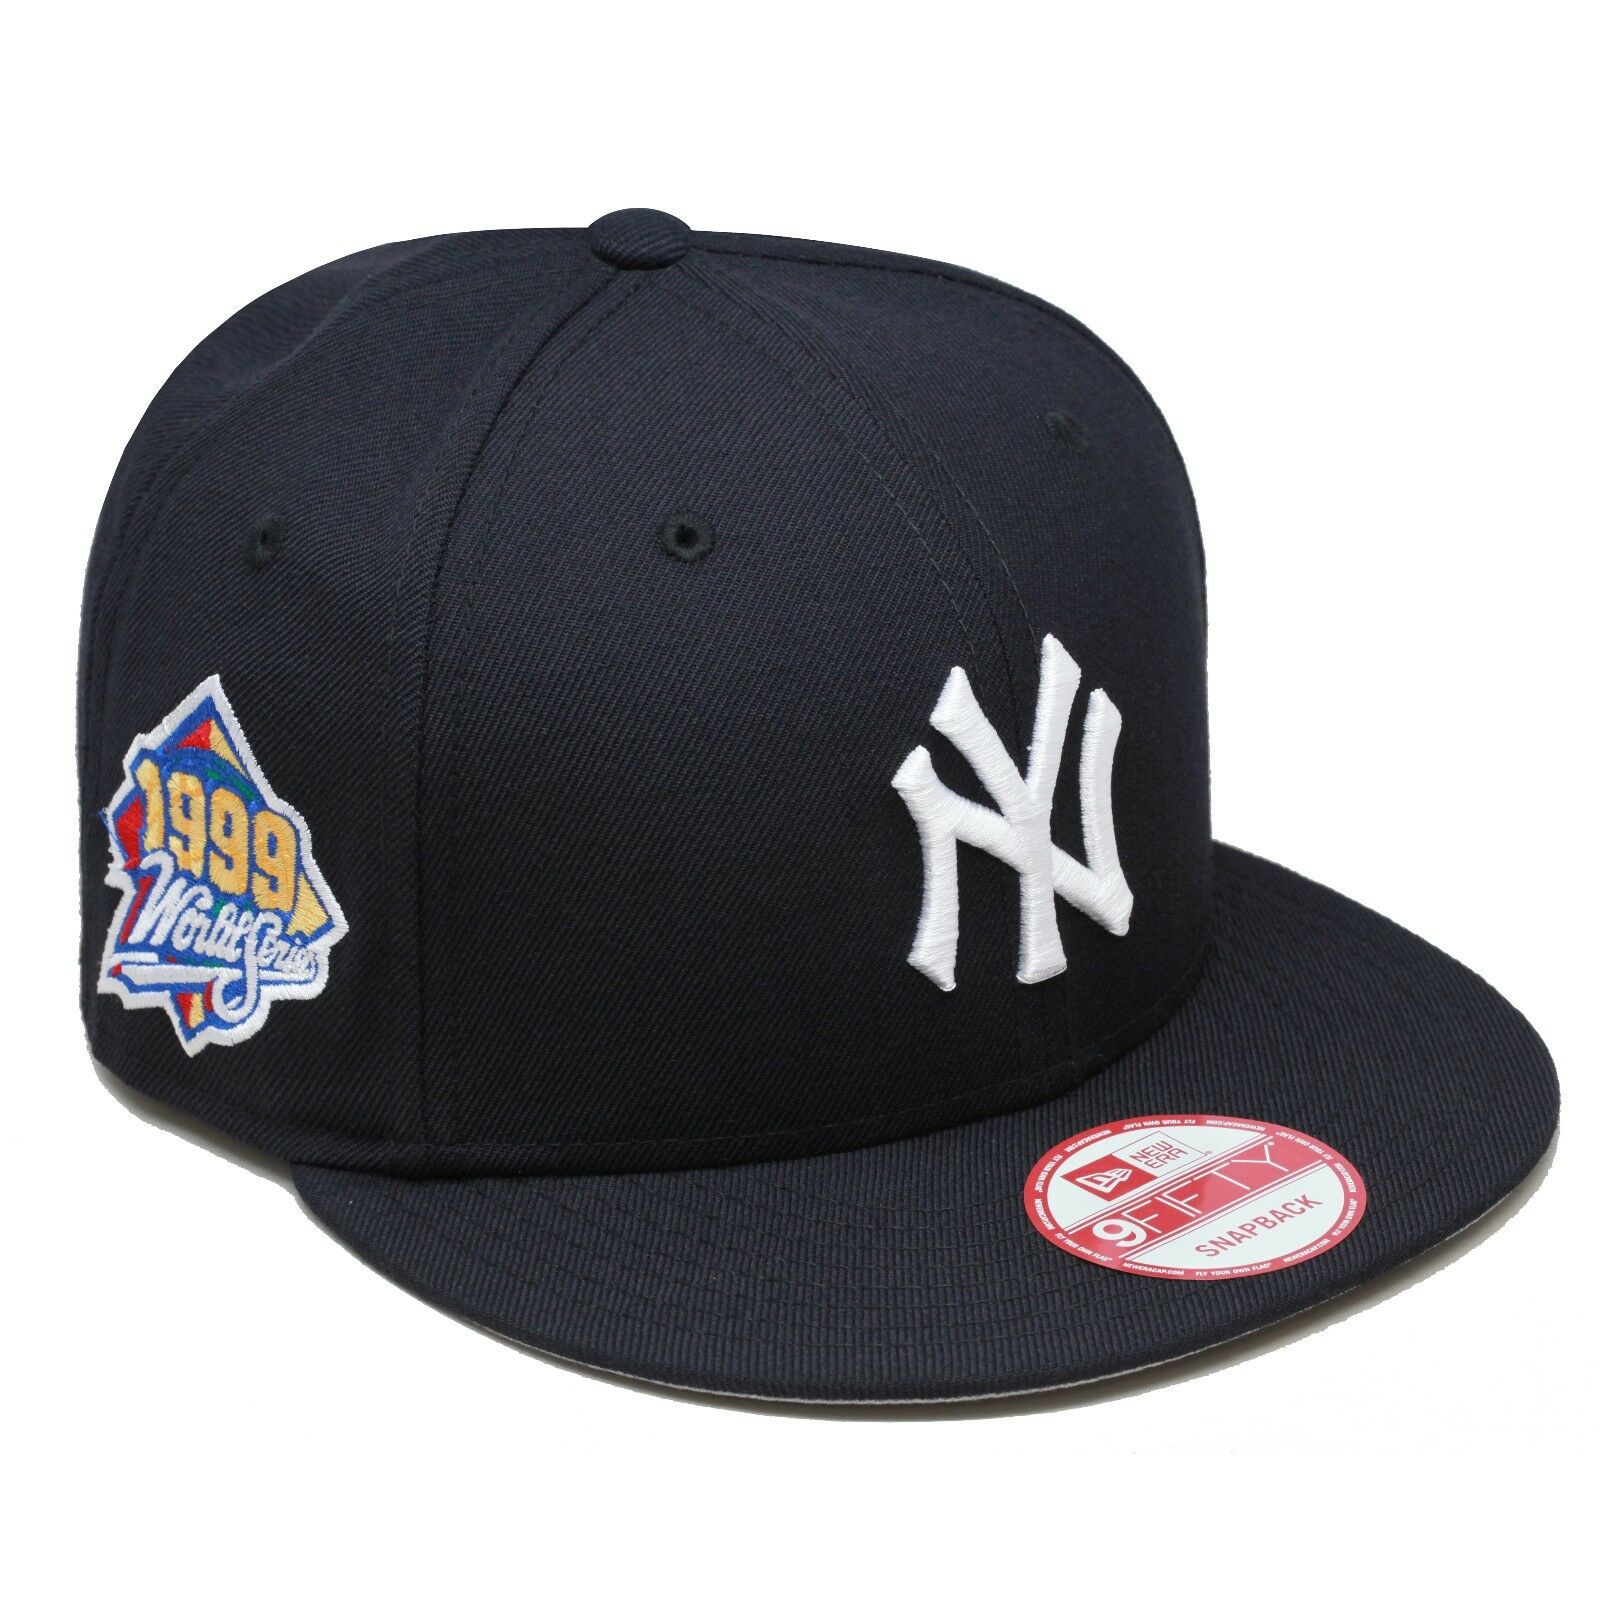 New Era New York Yankees Snapback Hat 1999 World Series Side Patch NAVY  WHITE 1 of 4 ... 9d8ab1ac560